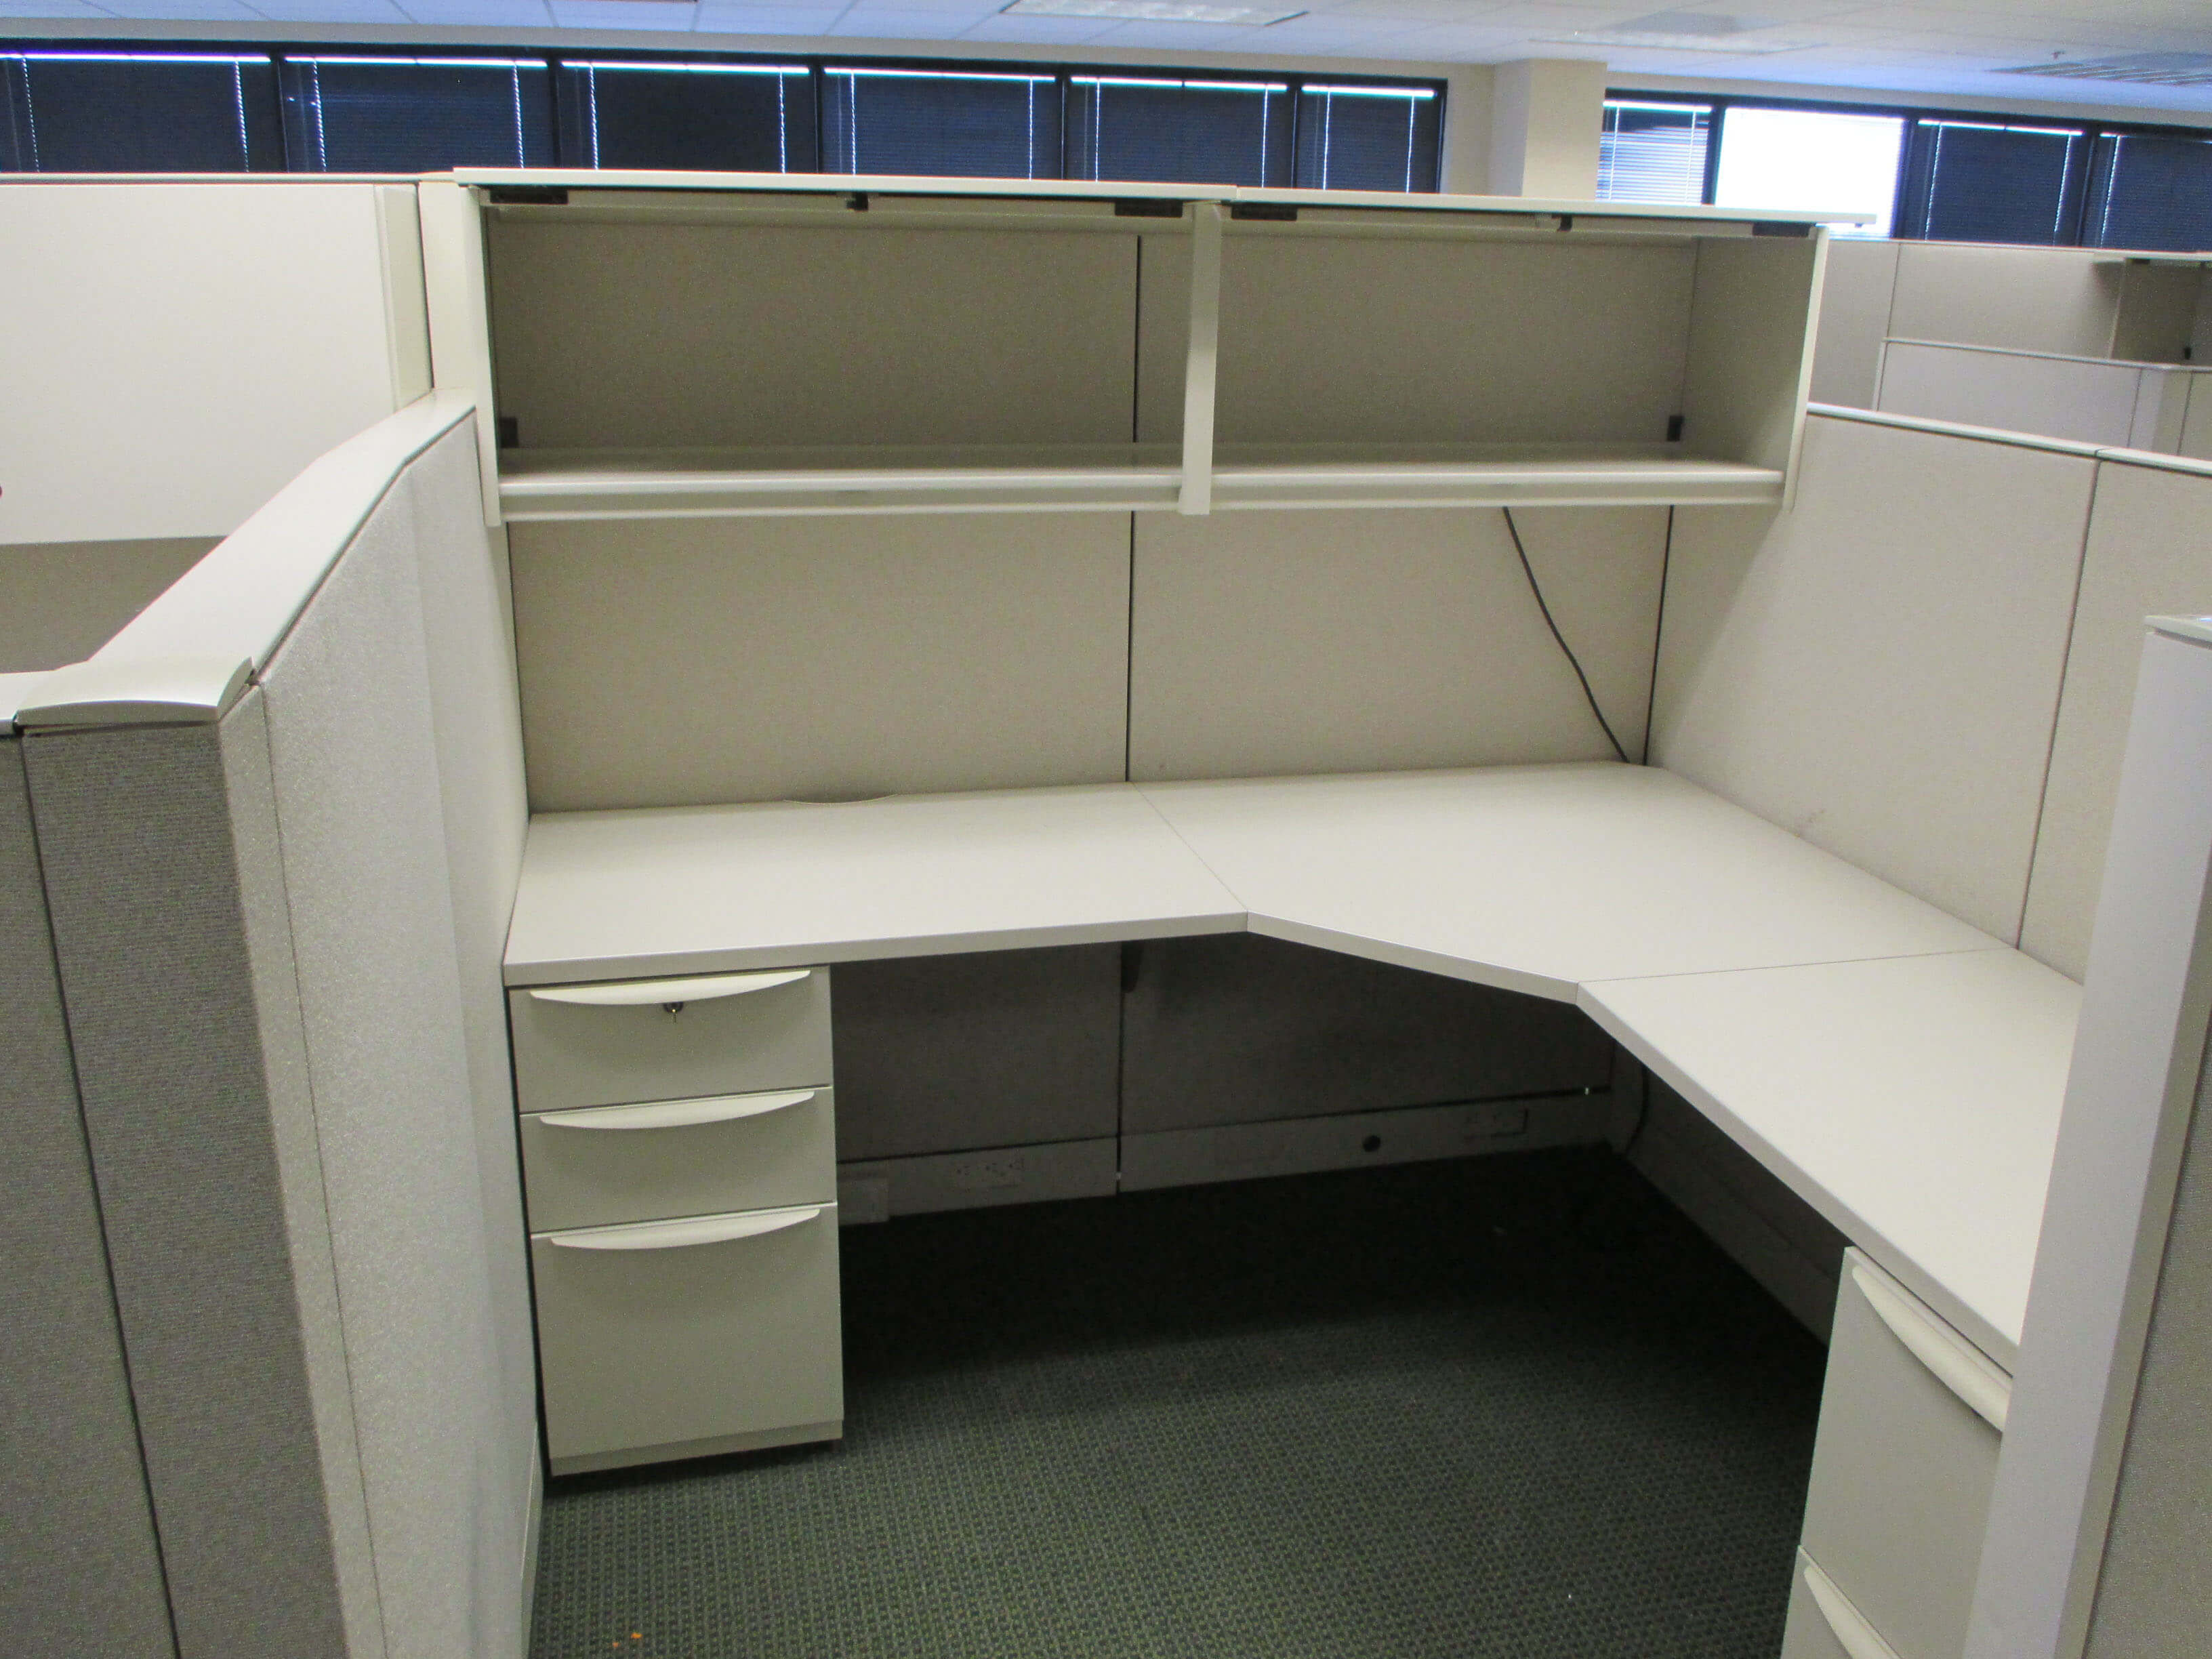 Used cubicles with Low/High Panel Combos from Haworth - This Haworth office furniture is available in modern light finishes and includes plenty of storage space